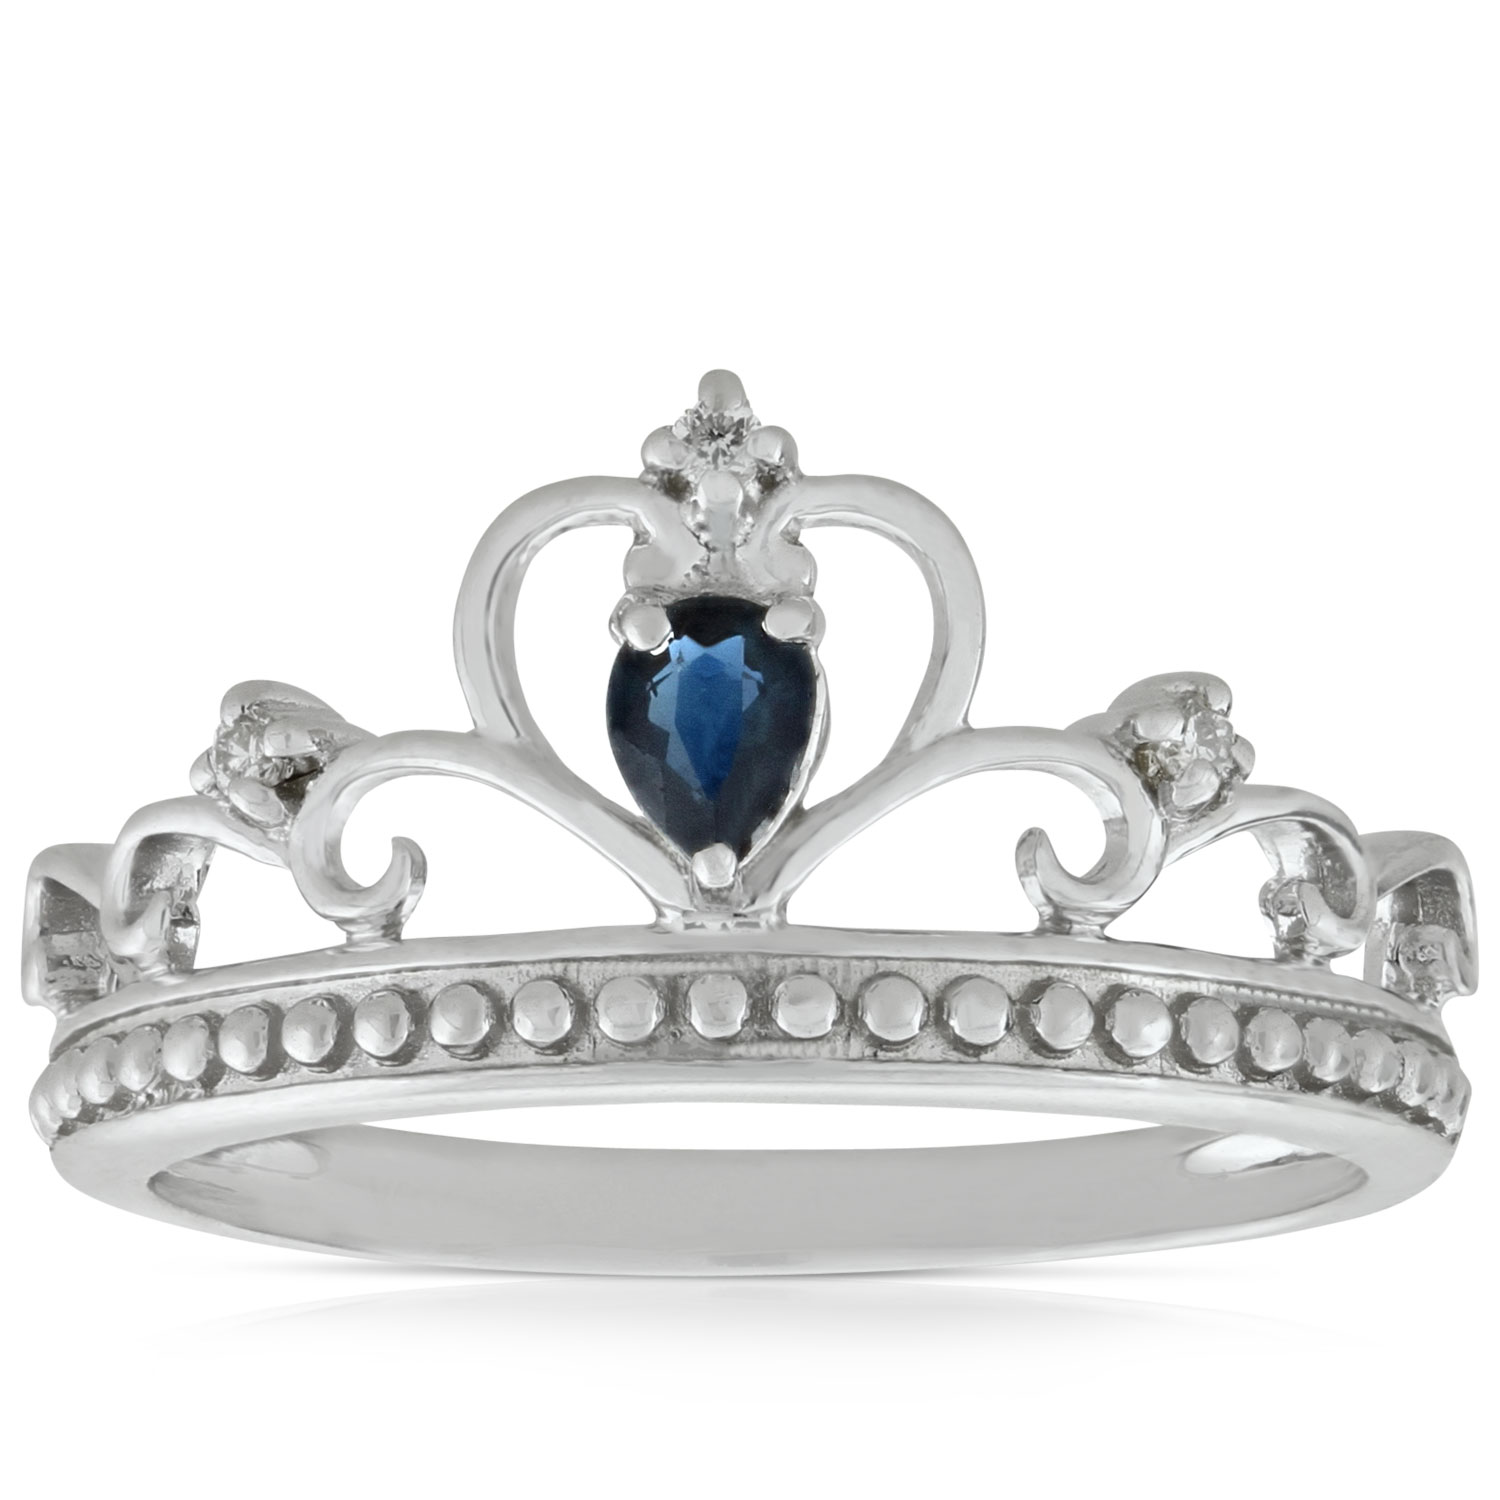 Sapphire & Diamond Crown Ring 14K | Ben Bridge Jeweler